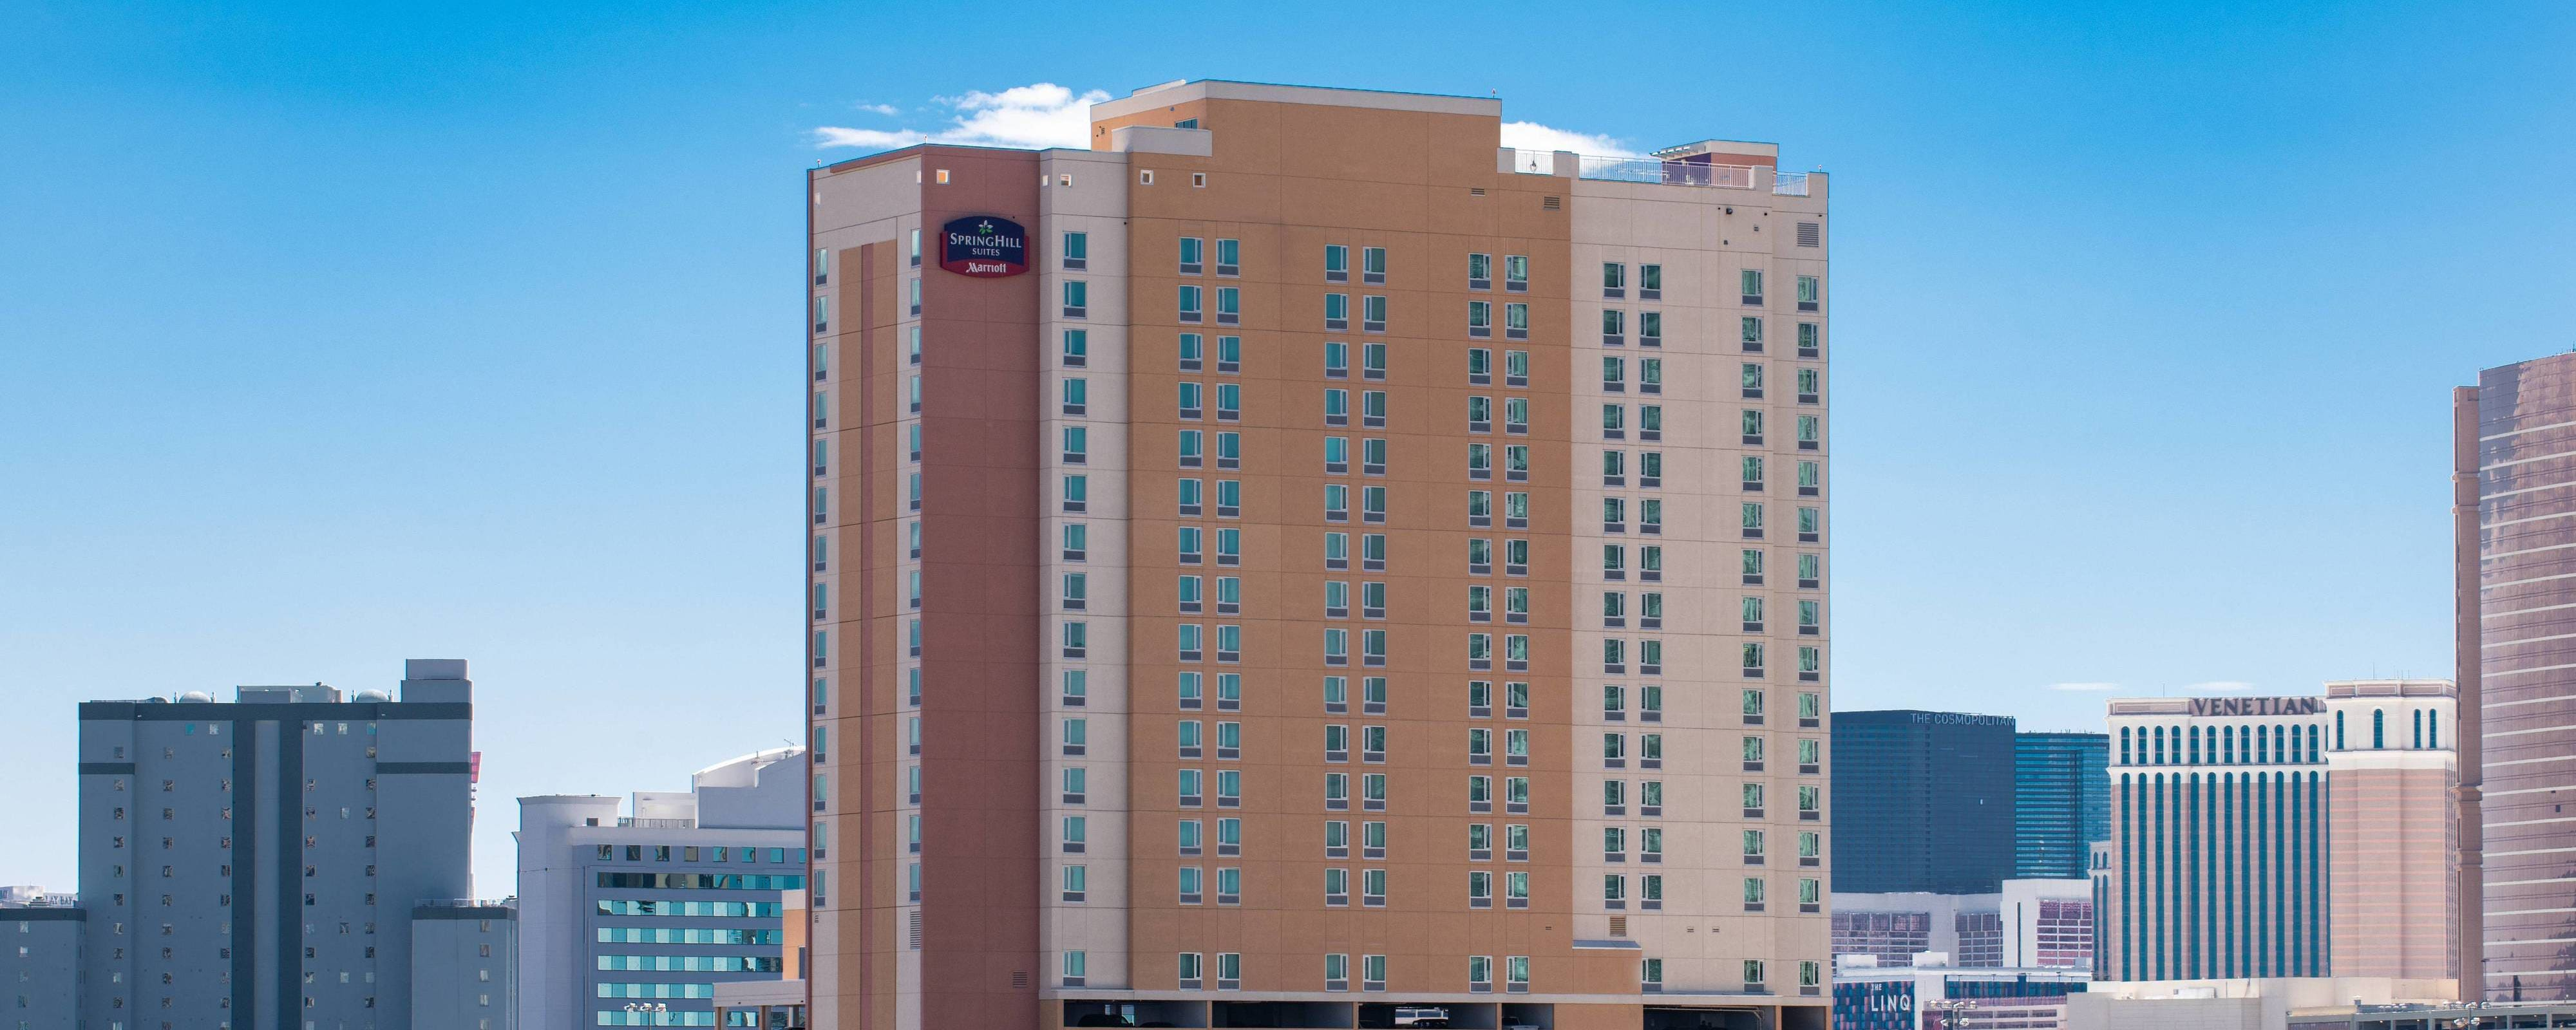 Aaa 3 Bedroom Convention Center Luxury Condos SpringHill Suites Las Vegas Convention Center